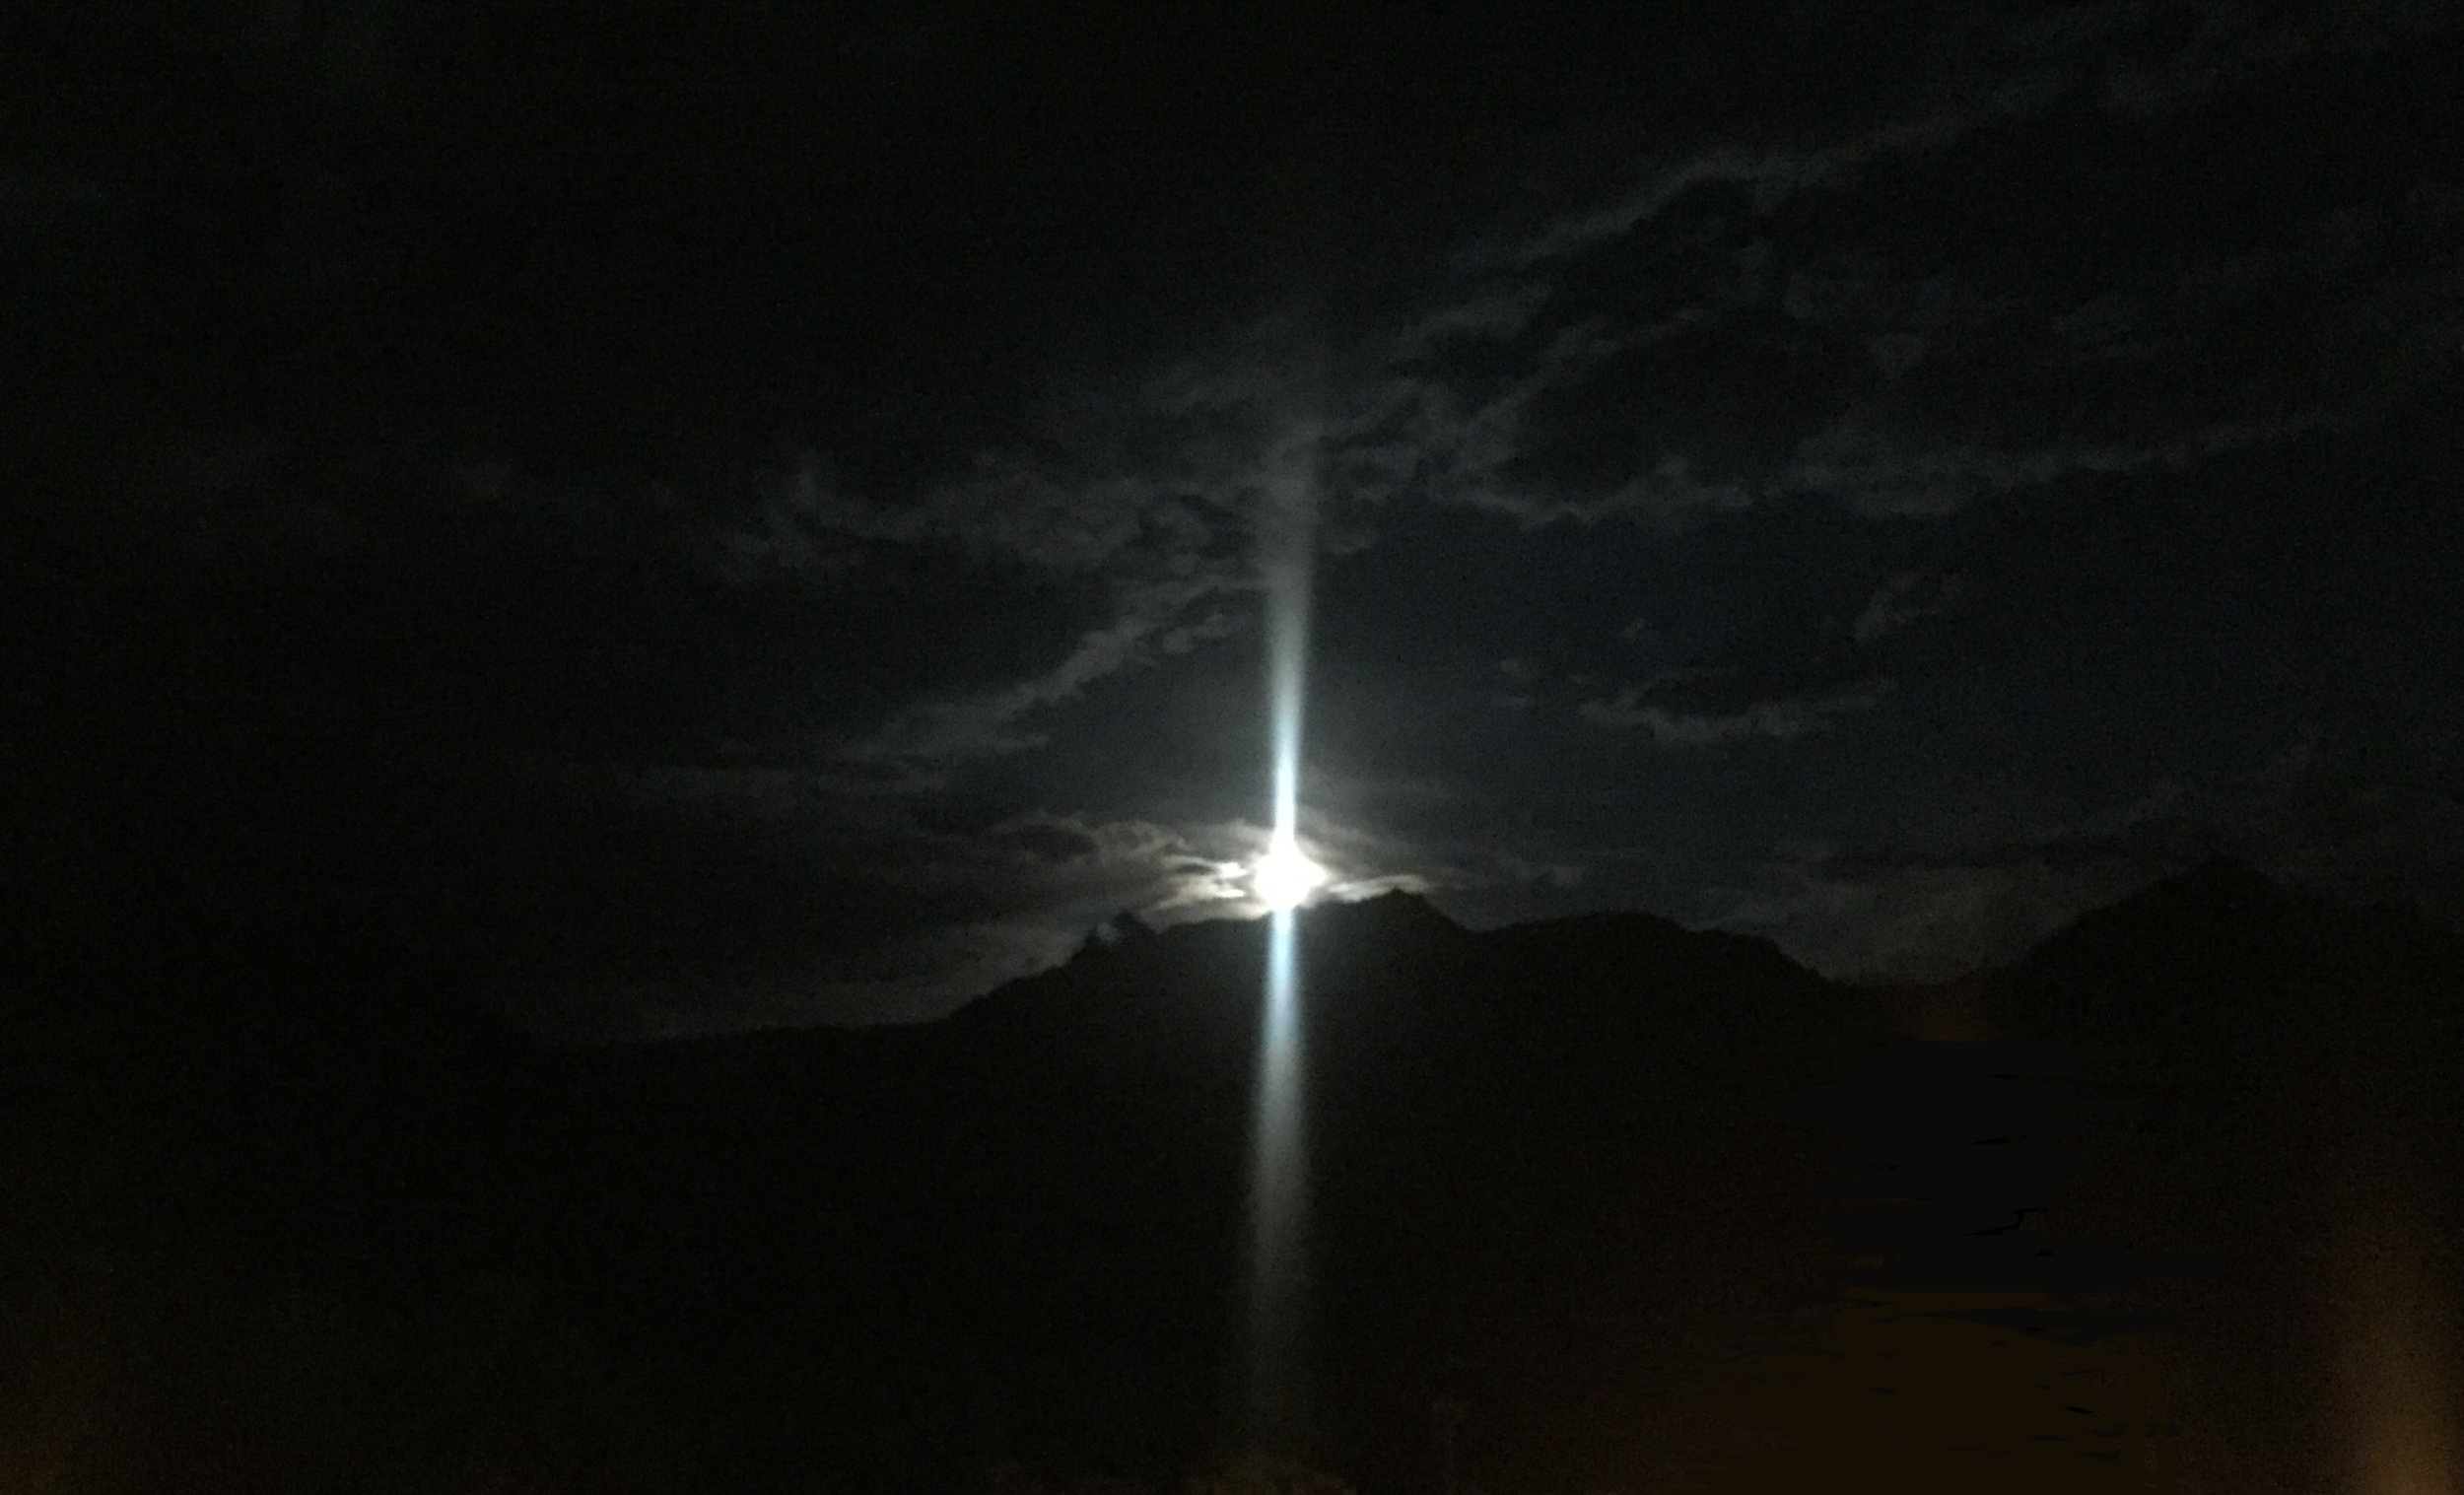 Full moon over Sedona. (We have not yet mastered taking pictures of the moon. But we are working on it.)